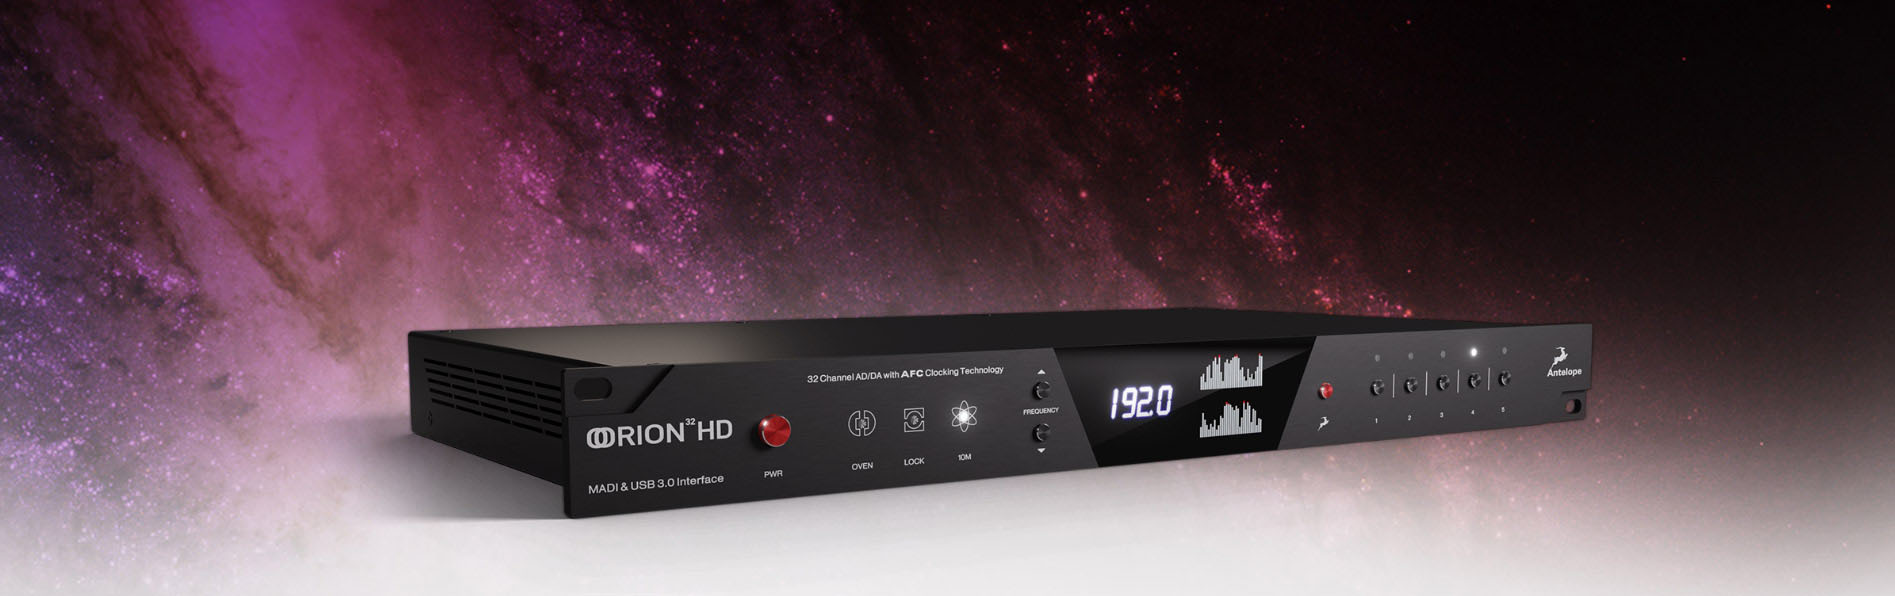 Antelope Audio ships Orion 32HD | Gen 3 audio interface with industry-leading AD/DA and comprehensive connectivity